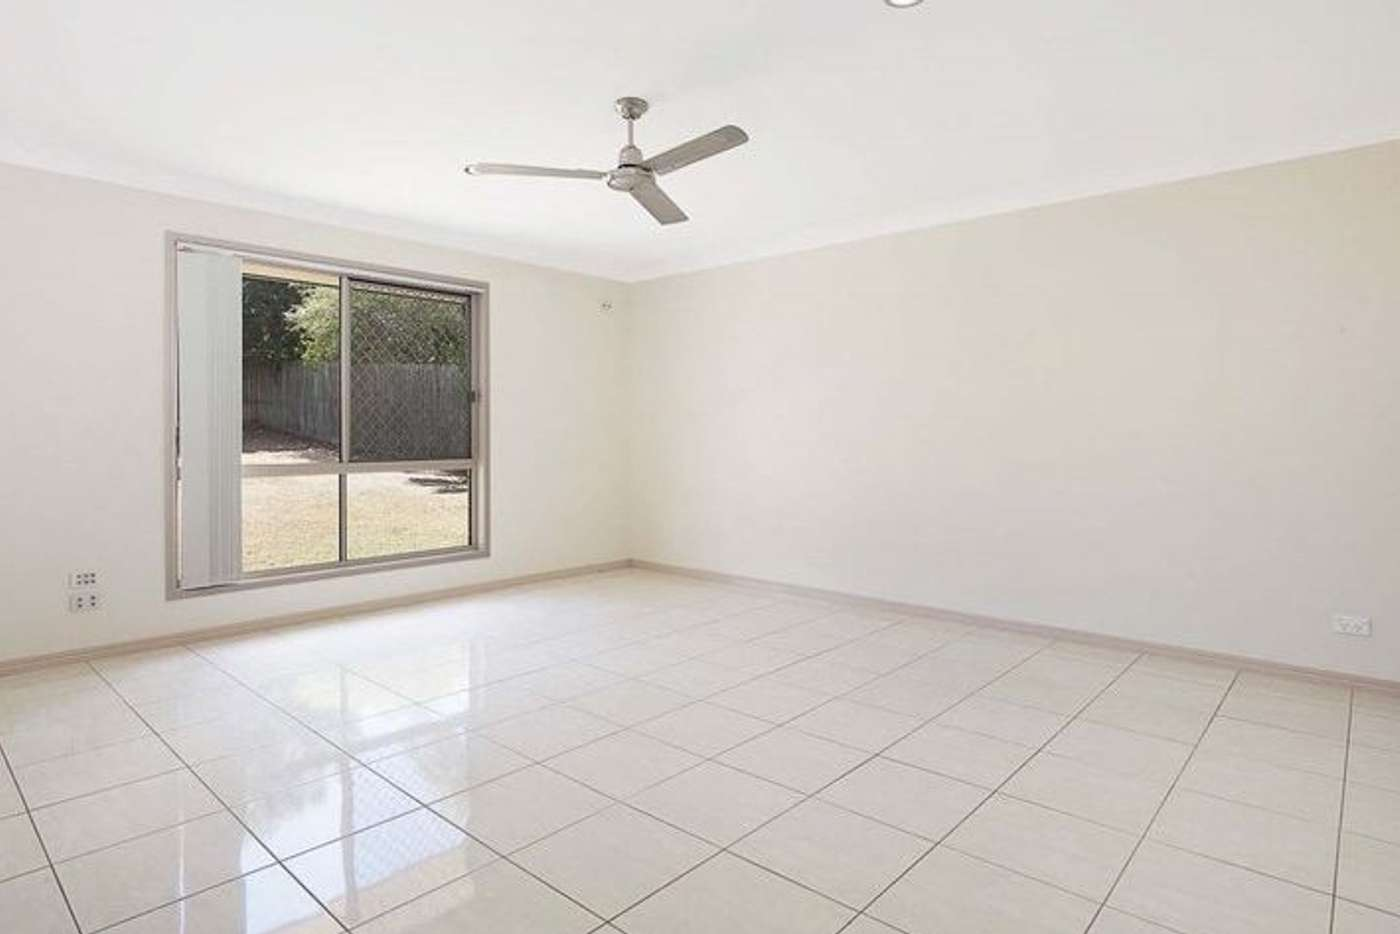 Sixth view of Homely house listing, 17 Arlington Court, Kawungan QLD 4655